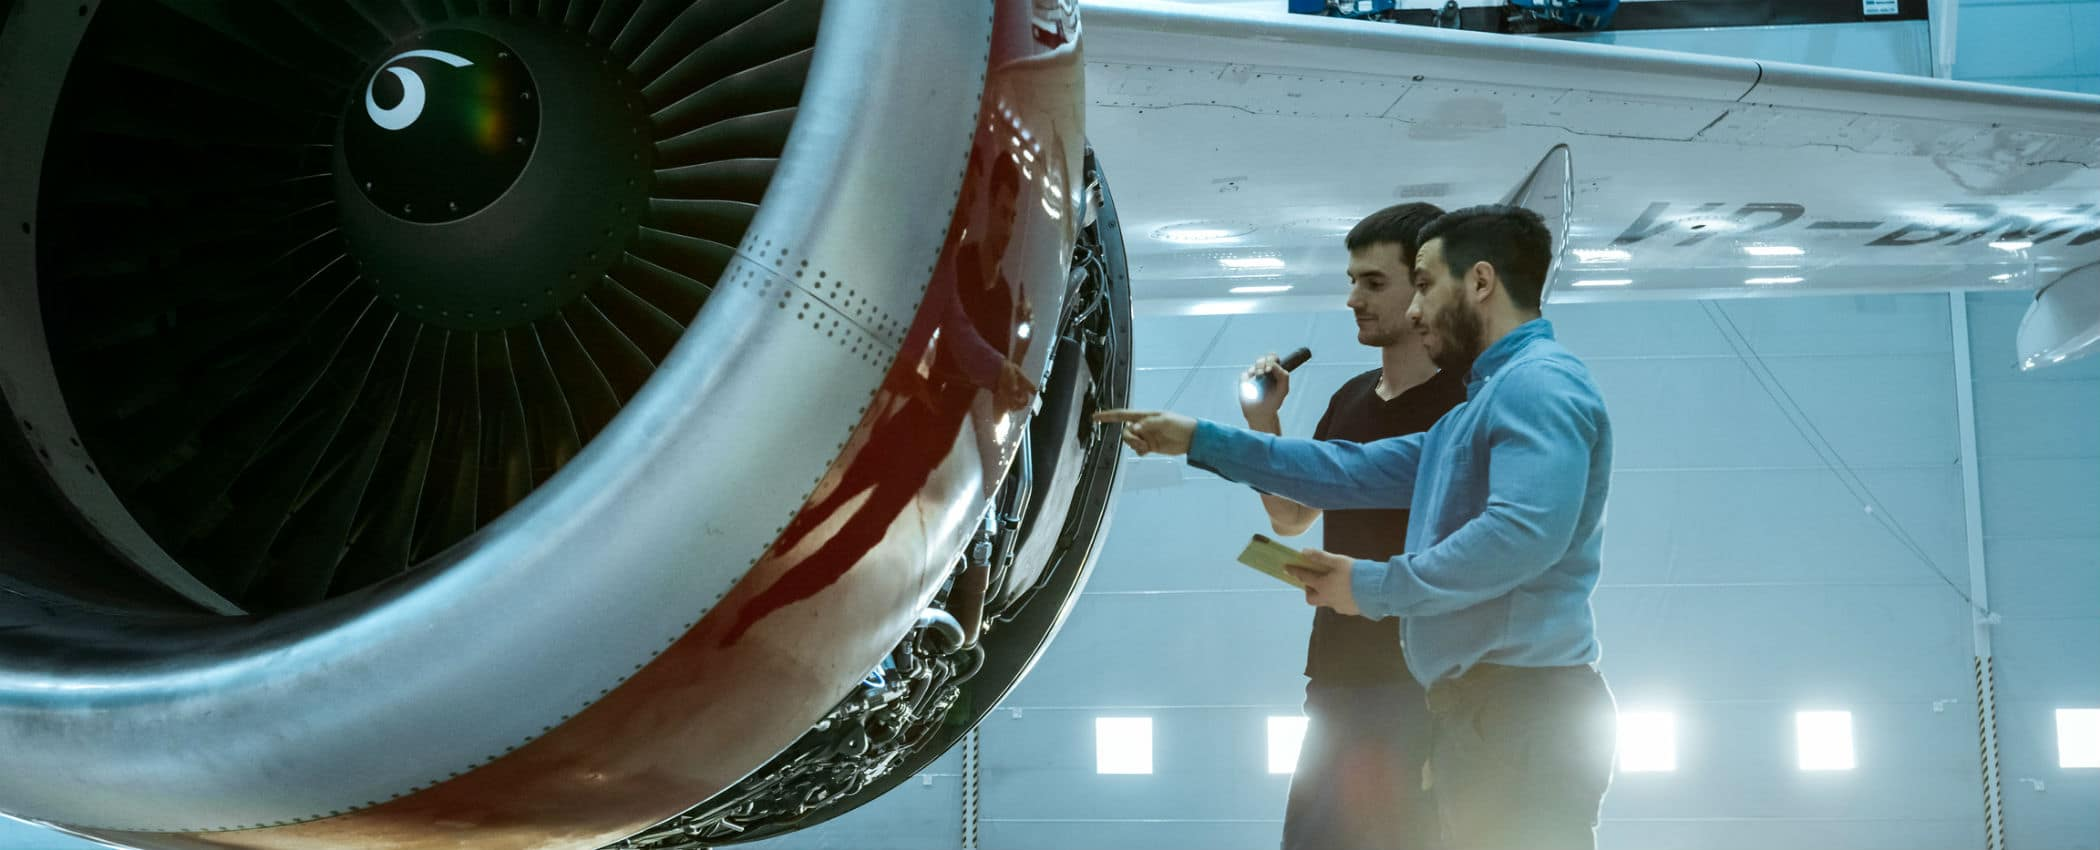 Two men look at a commercial airline engine